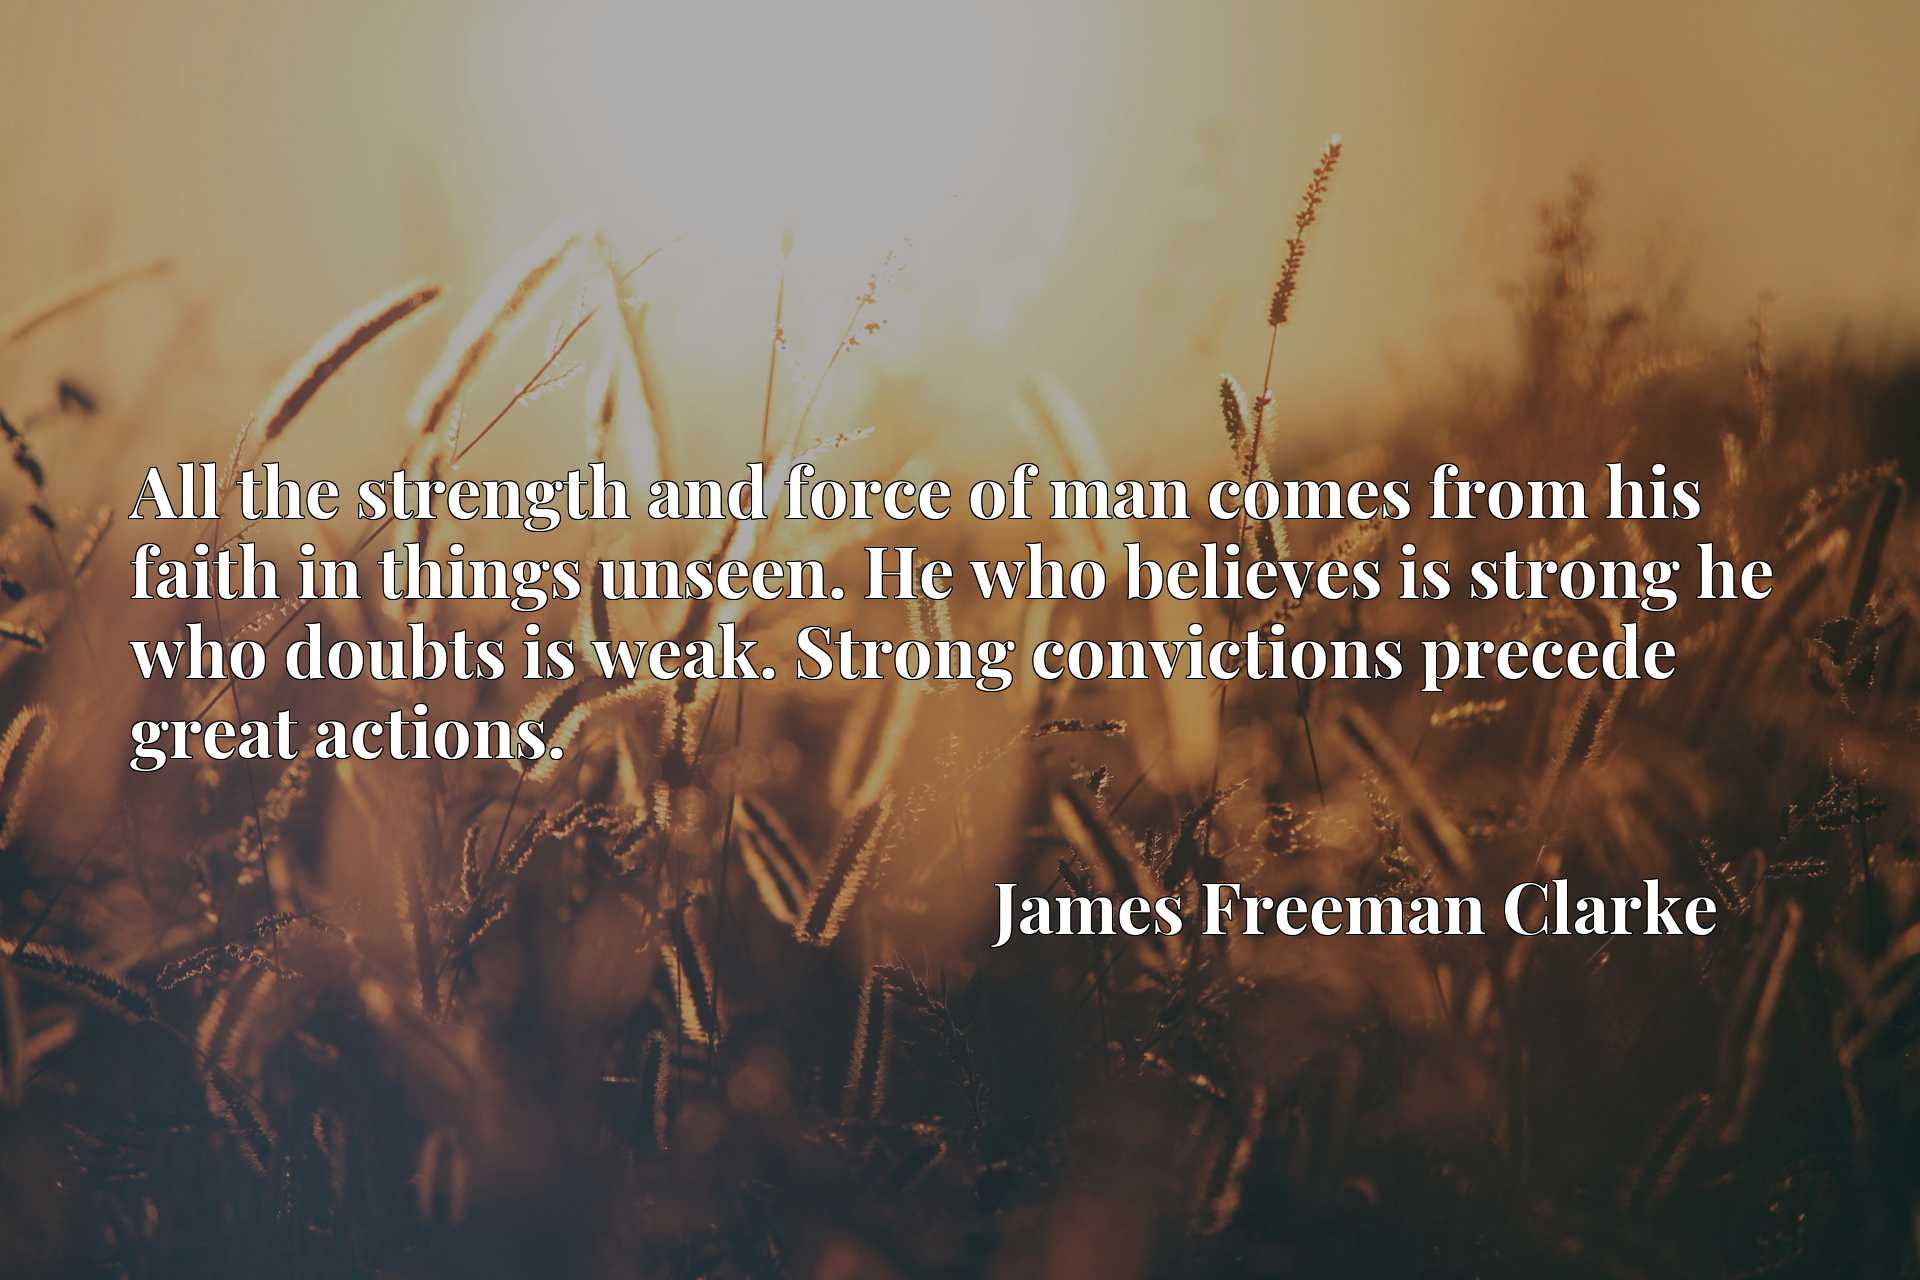 All the strength and force of man comes from his faith in things unseen. He who believes is strong he who doubts is weak. Strong convictions precede great actions.